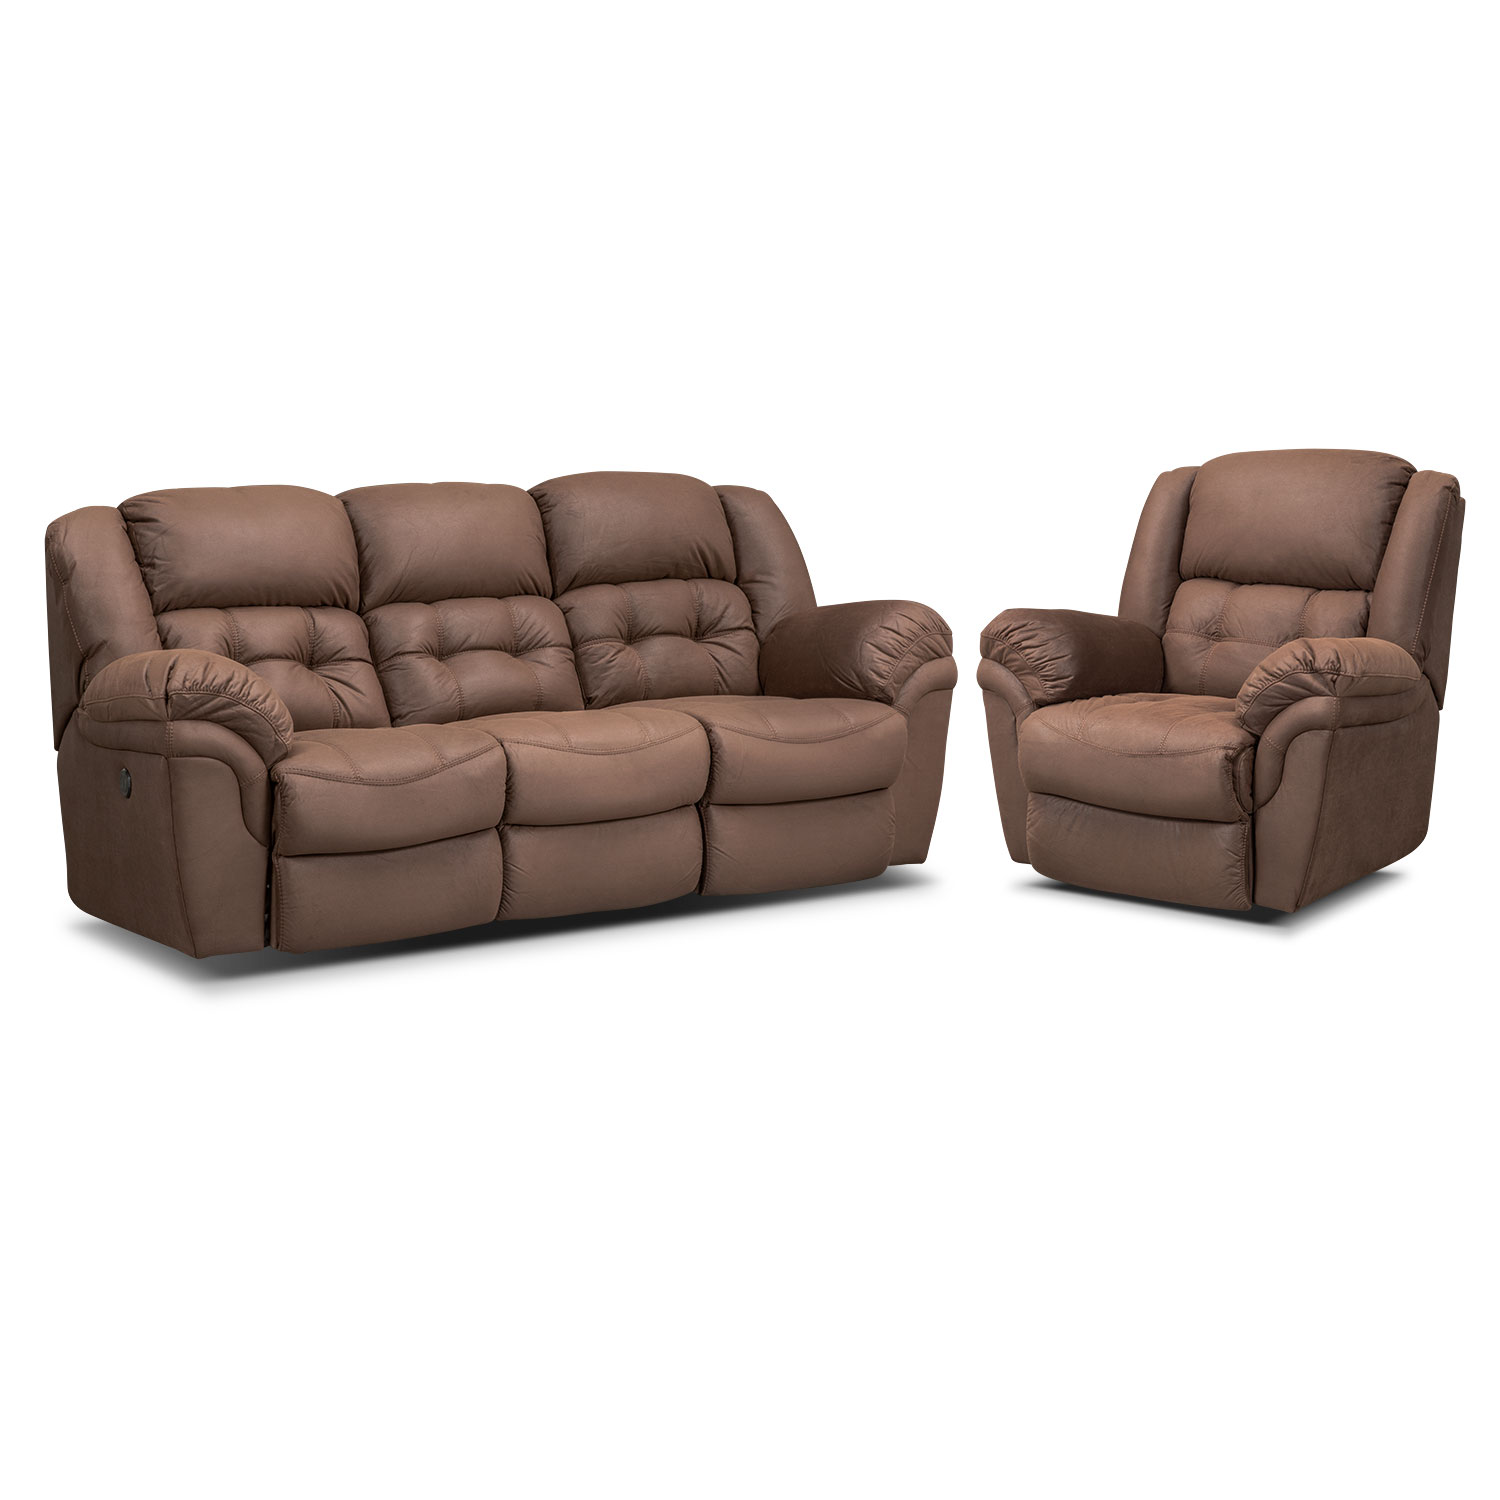 Living Room Furniture - Lancer Power Reclining Sofa and Manual Glider Recliner Set - Chocolate